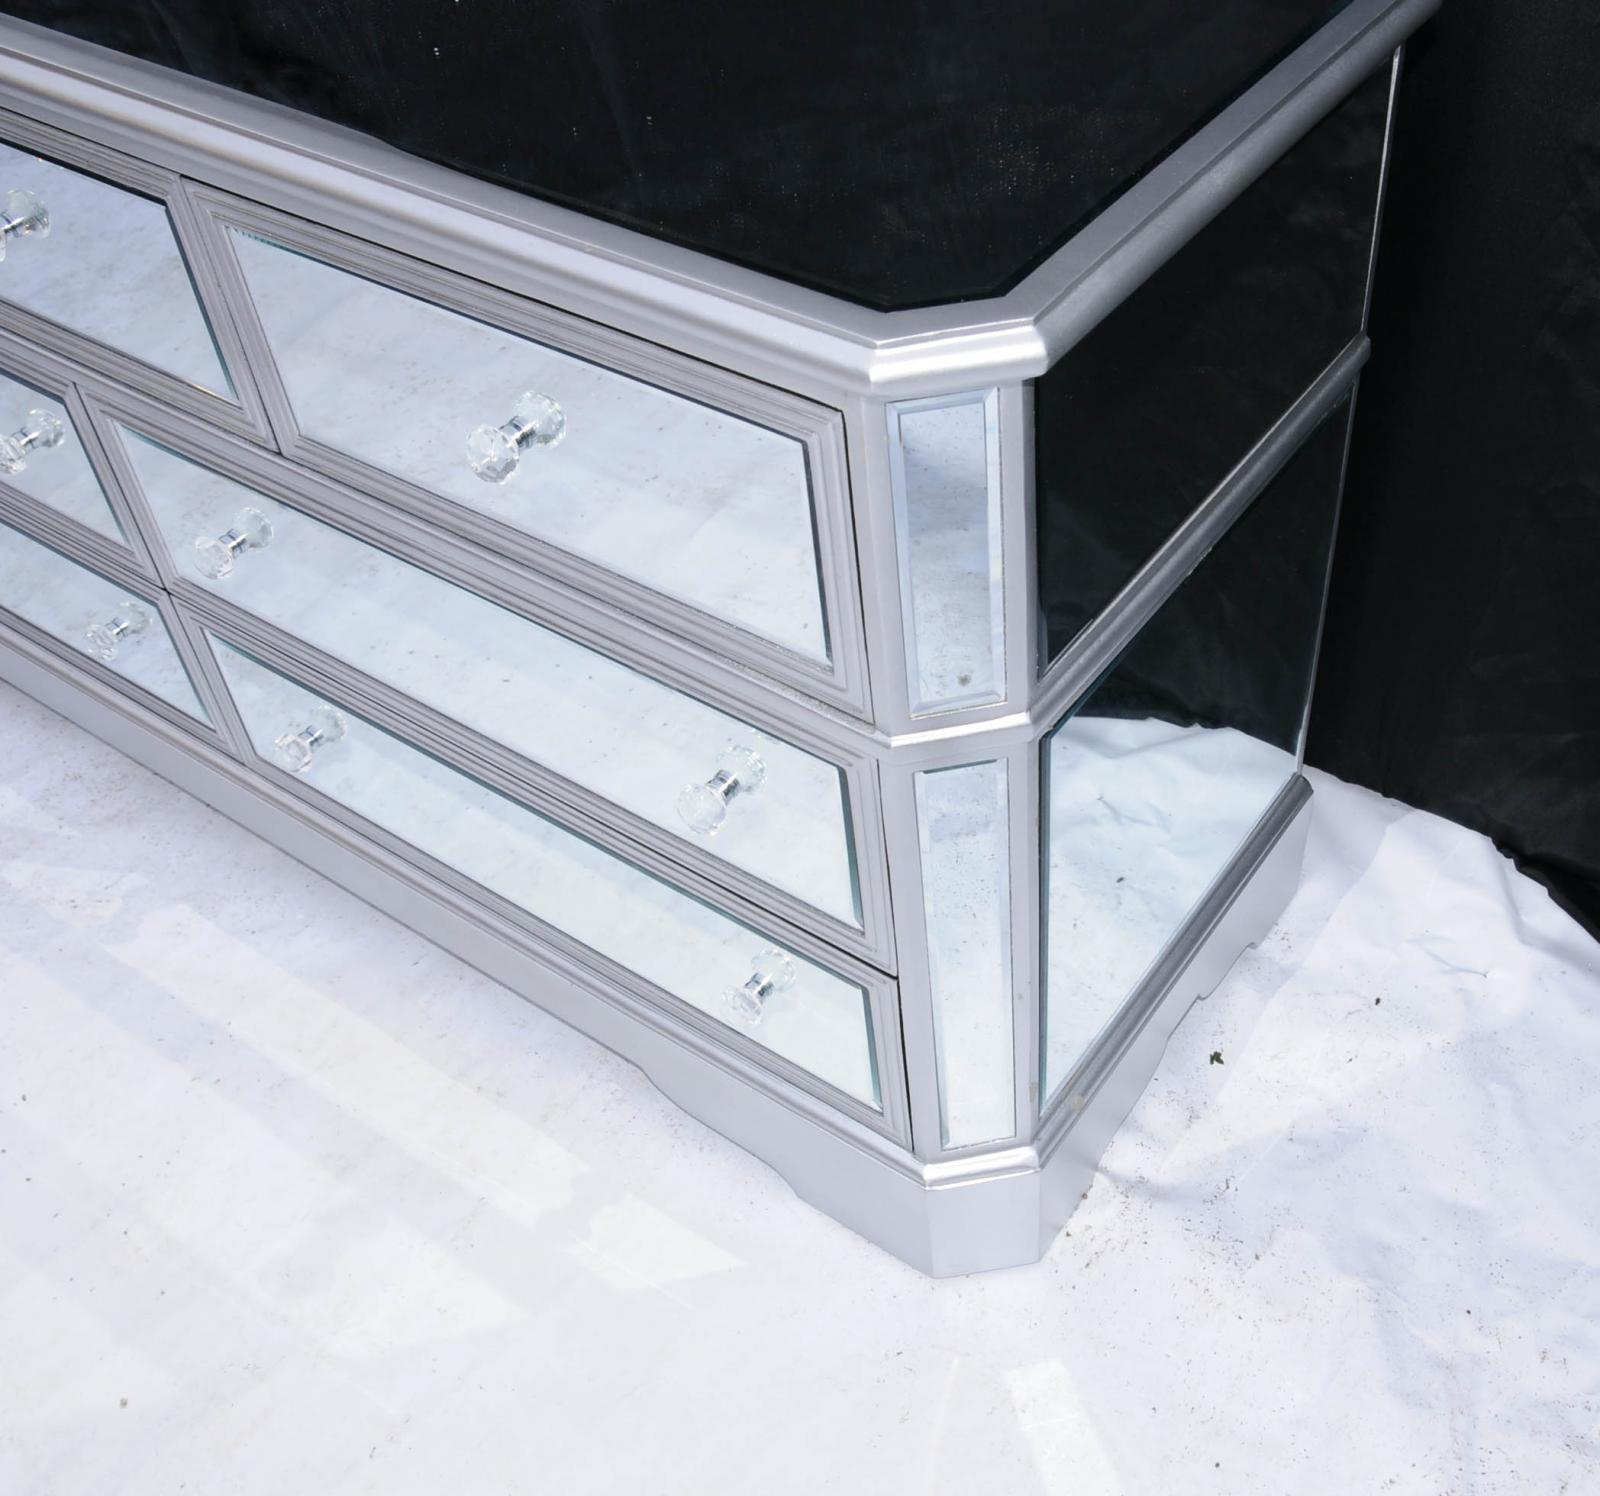 Big Mirrored Deco Chest Drawers mode Glass Furniture